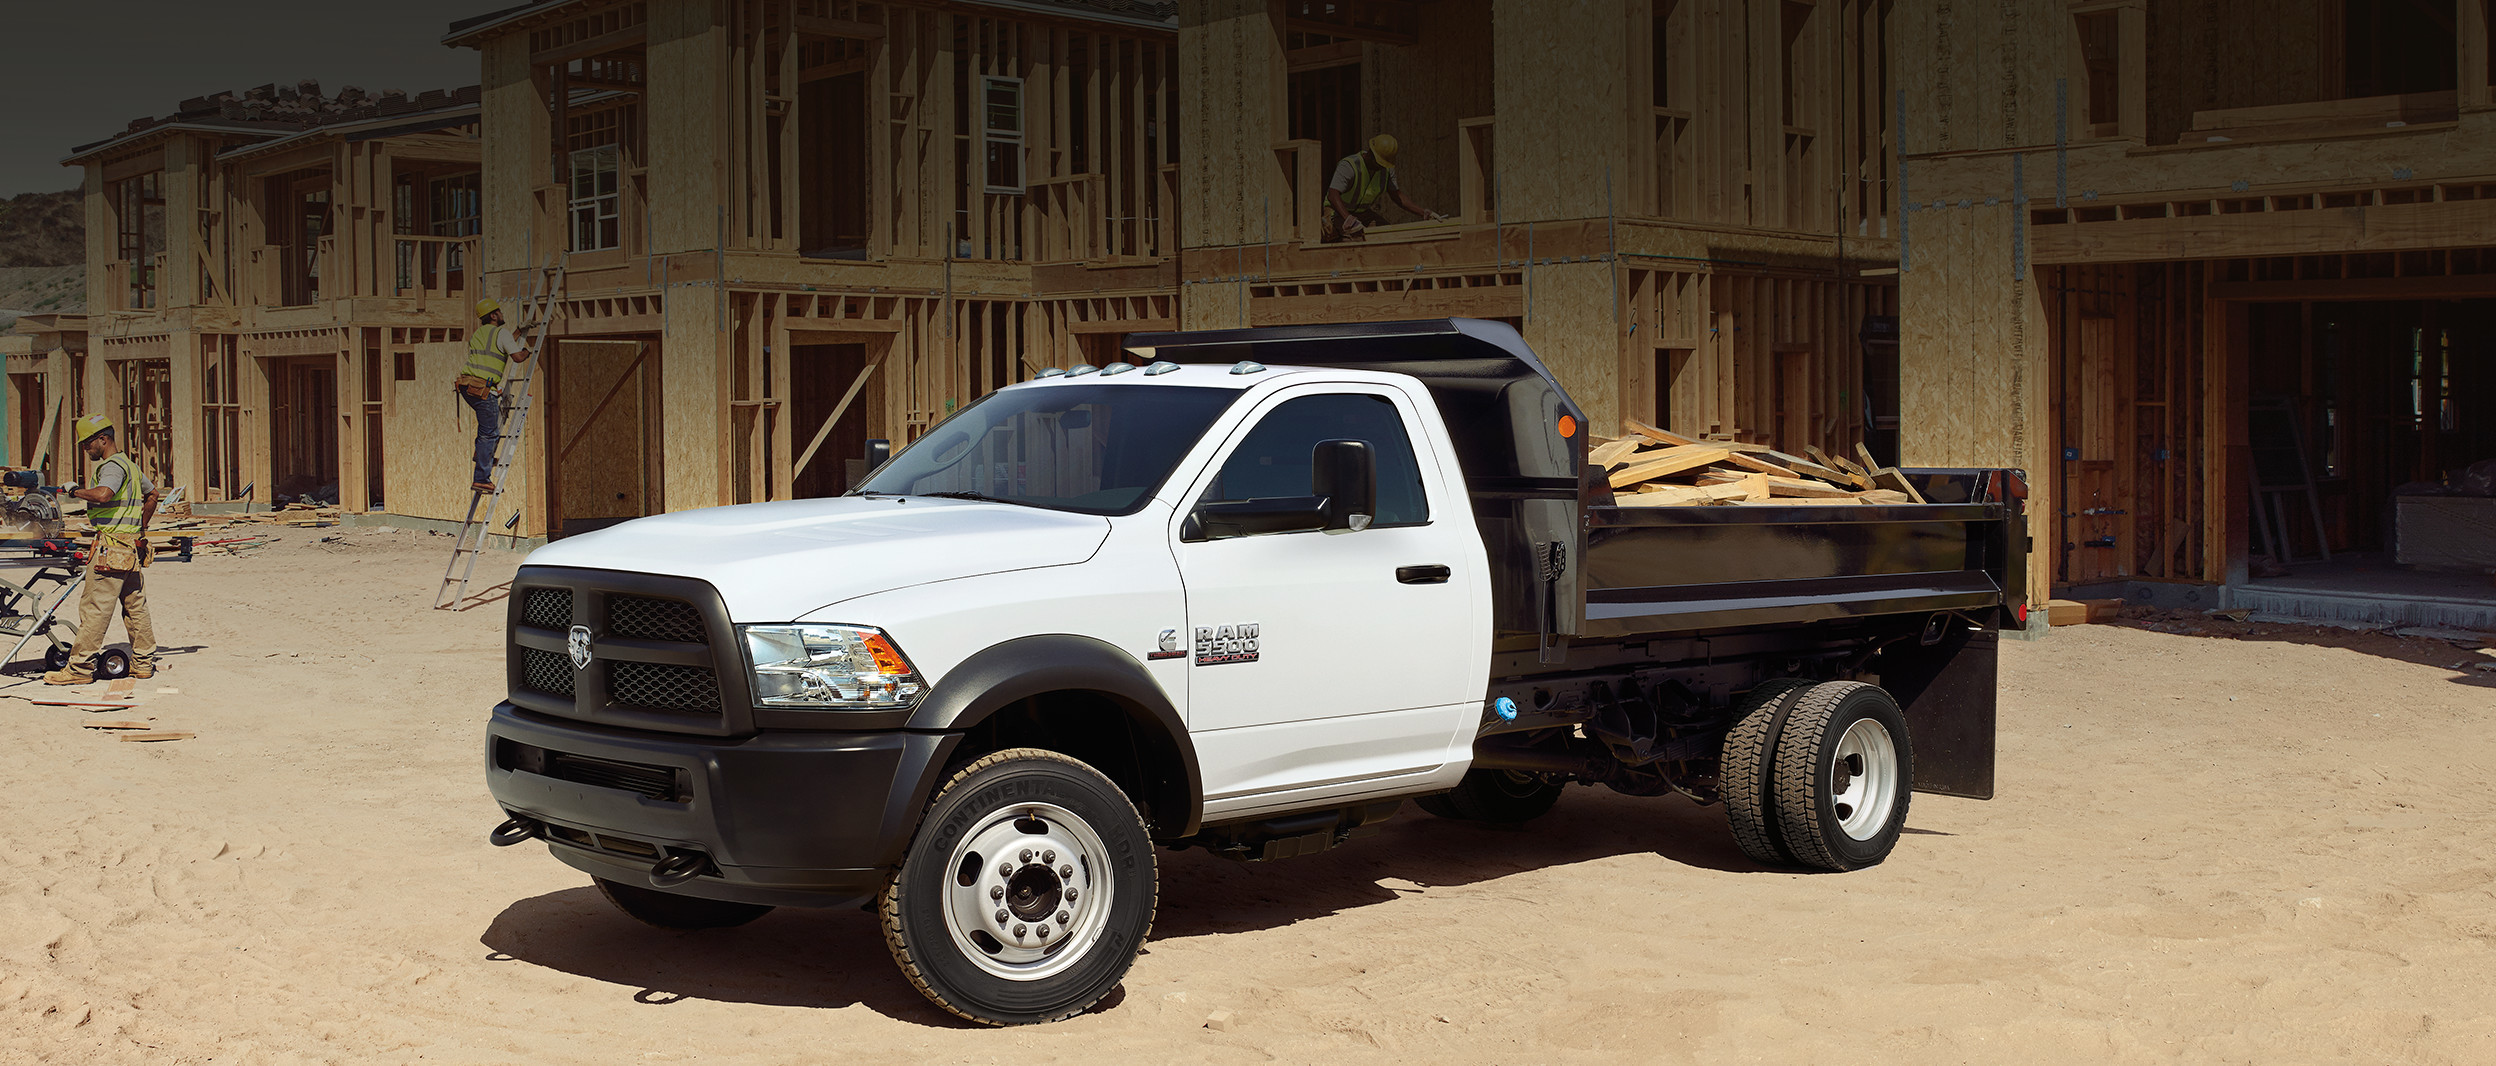 2018 RAM Chassis Cab side view, shown in white